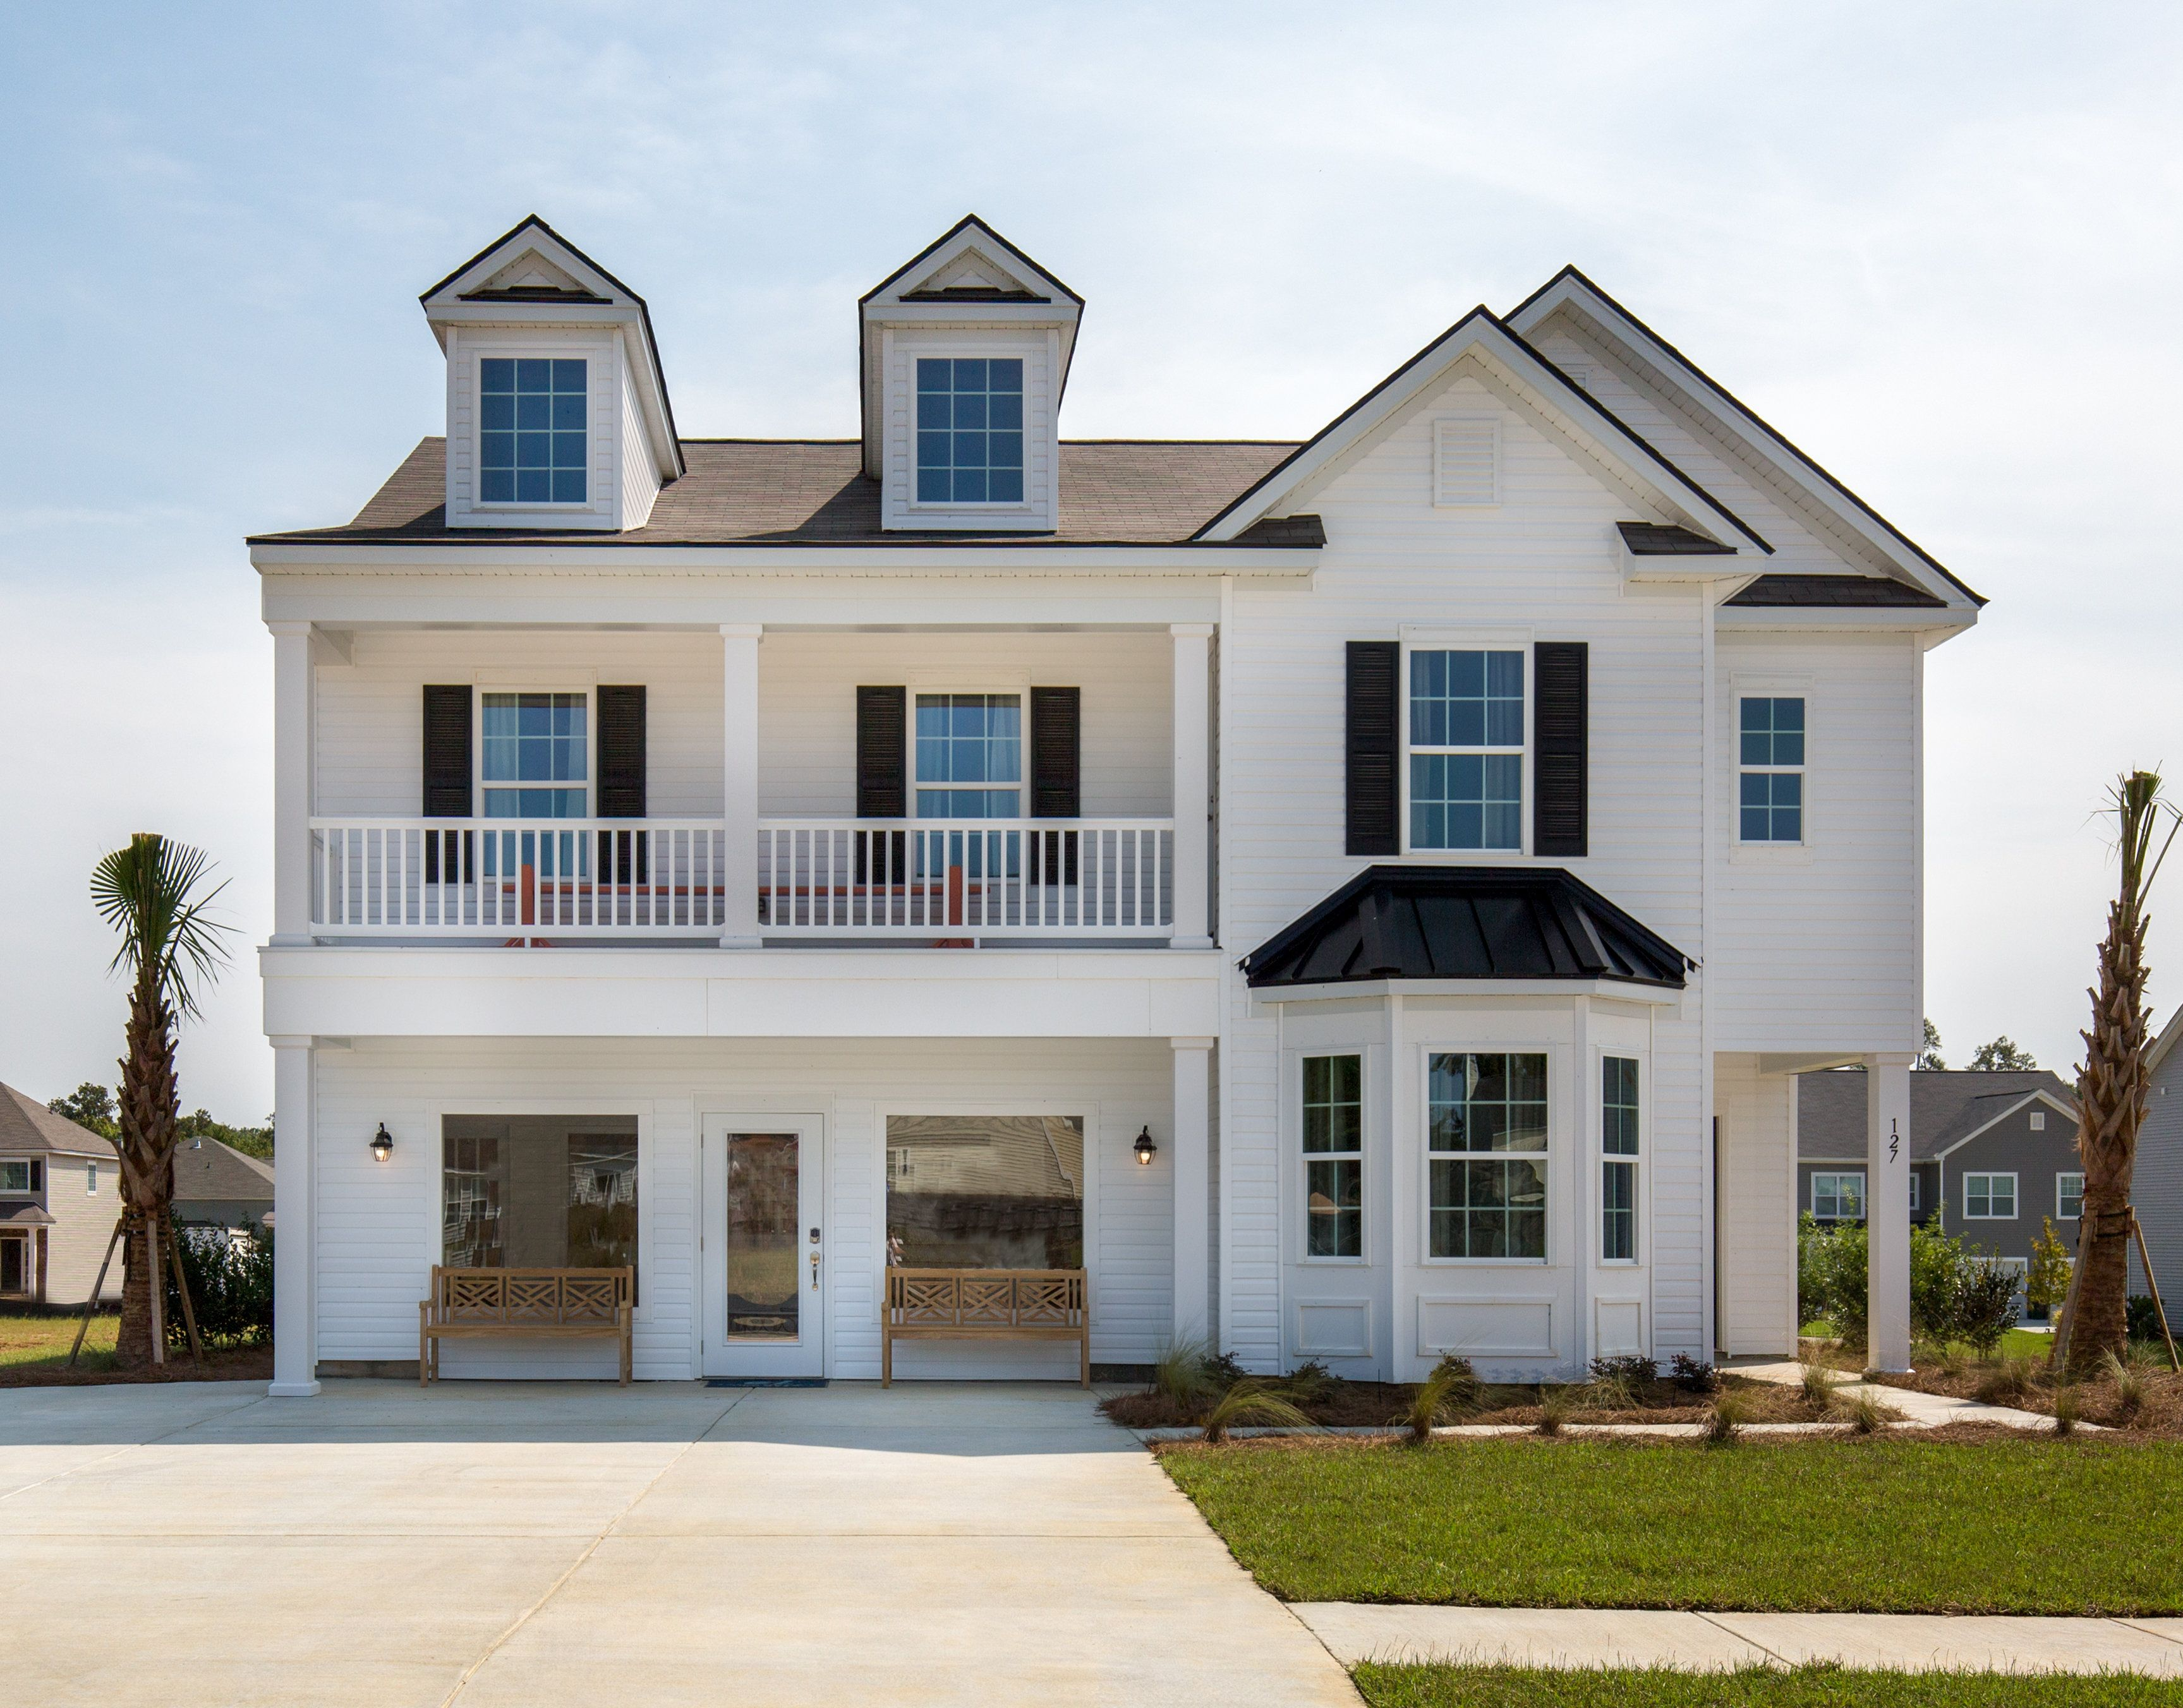 Hanover with images new homes for sale house styles